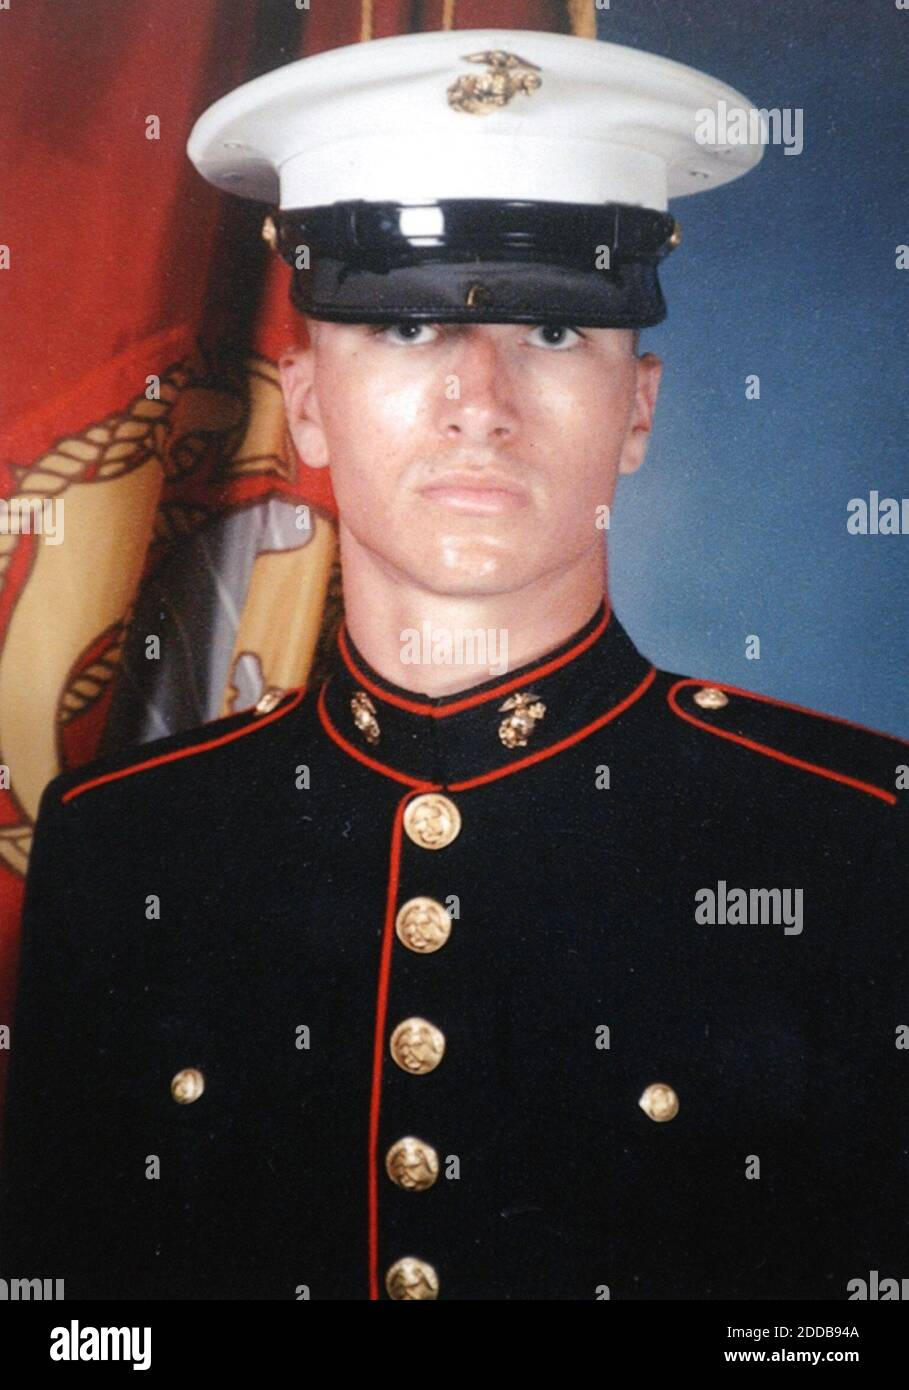 NO FILM, NO VIDEO, NO TV, NO DOCUMENTARY - Undated picture of U.S. Marine Pfc. Ryan Jerabek was one of the Marines of Echo Company, 2nd Battalion 4th Marines killed in April 2004 in fighting in Ramadi, Iraq. Photo courtesy the Jerabek family/Philadelphia Inquirer/KRT/ABACA. Stock Photo